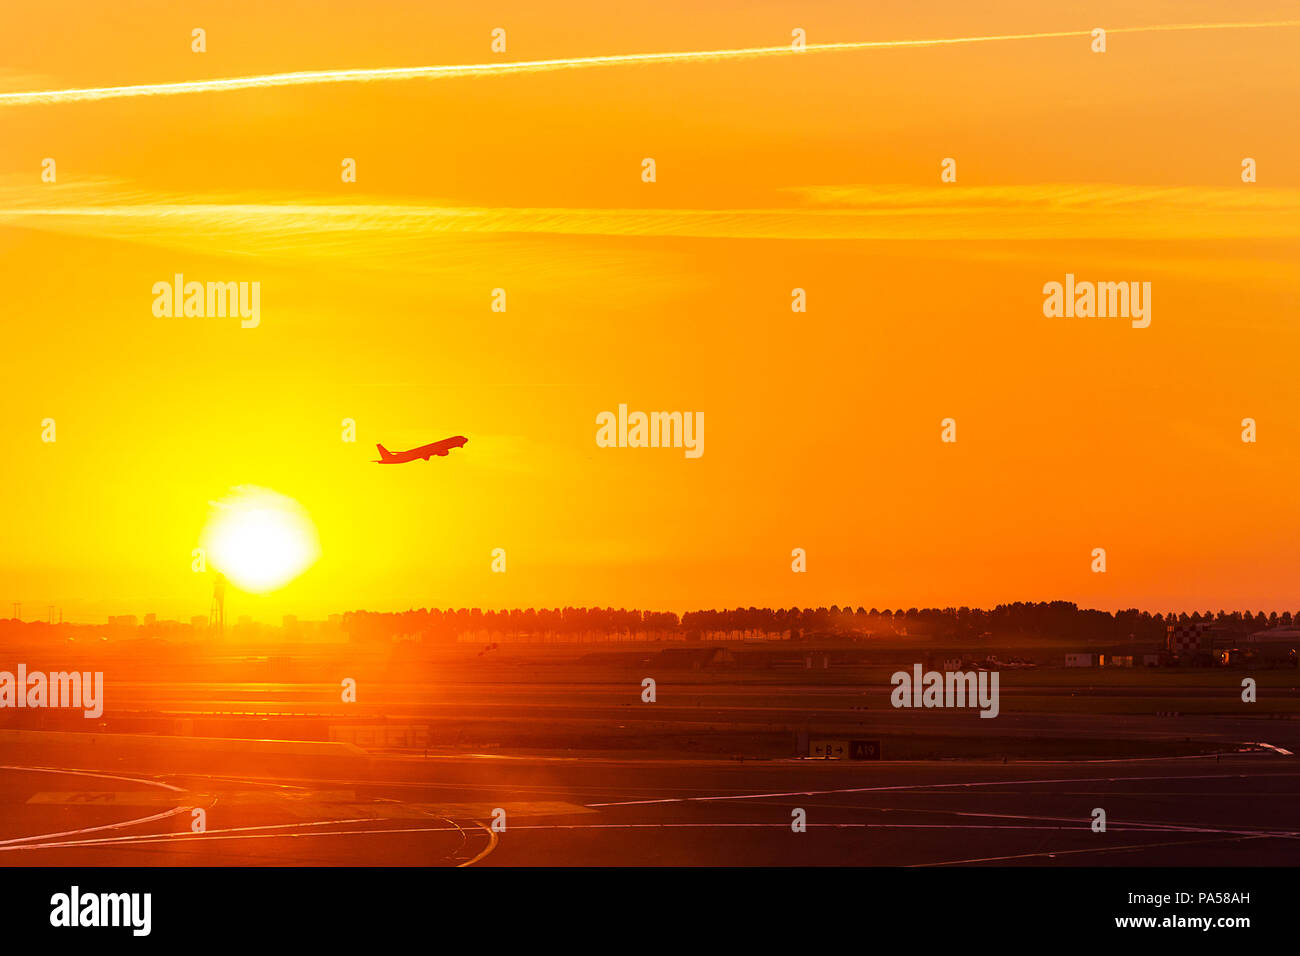 Silhouette of aeroplane, plane, take off on air at sunset time with all passenger on board for travel and for business at airport, with copy space - Stock Image